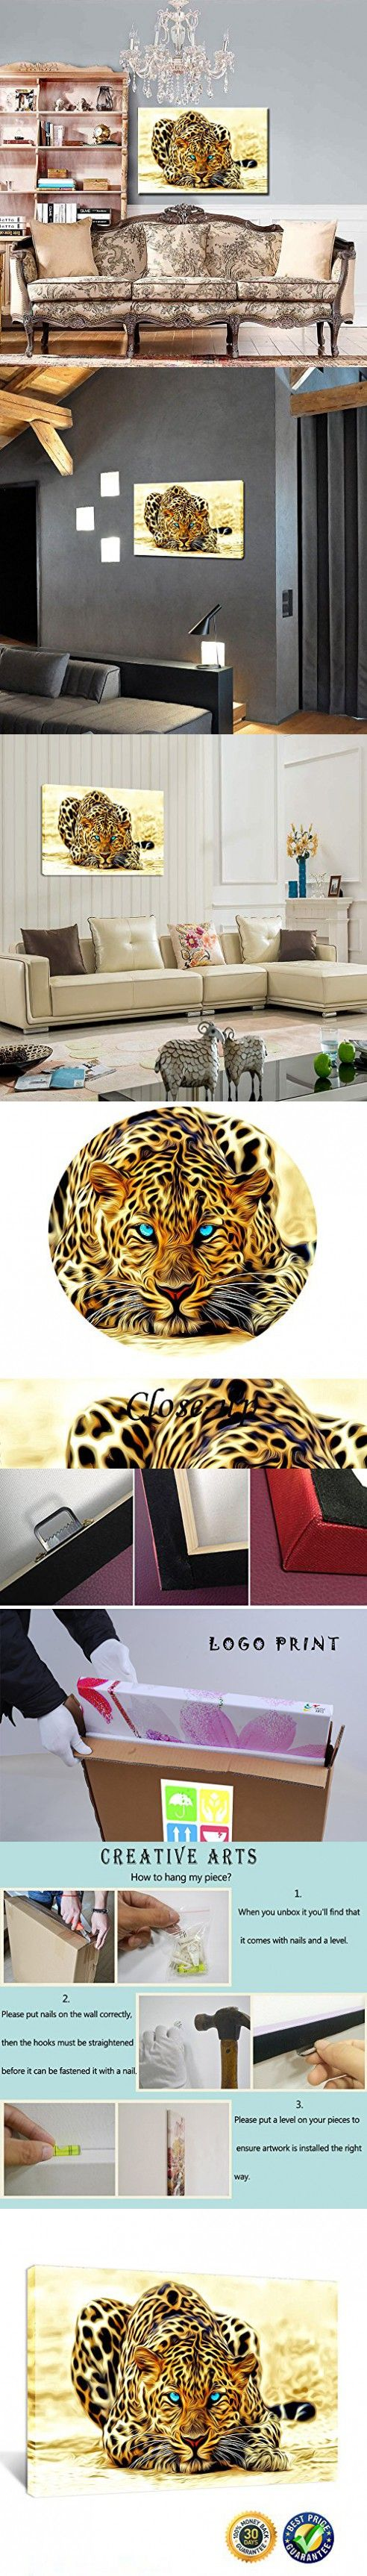 Creative Art- Gallery Wrap Canvas Prints - 3d Golden Cheetah Decorative Framed Canvas Wall Art,south African Animal Picture Print on Canvas,home Wall Decor Ready to Hang 24''x36''